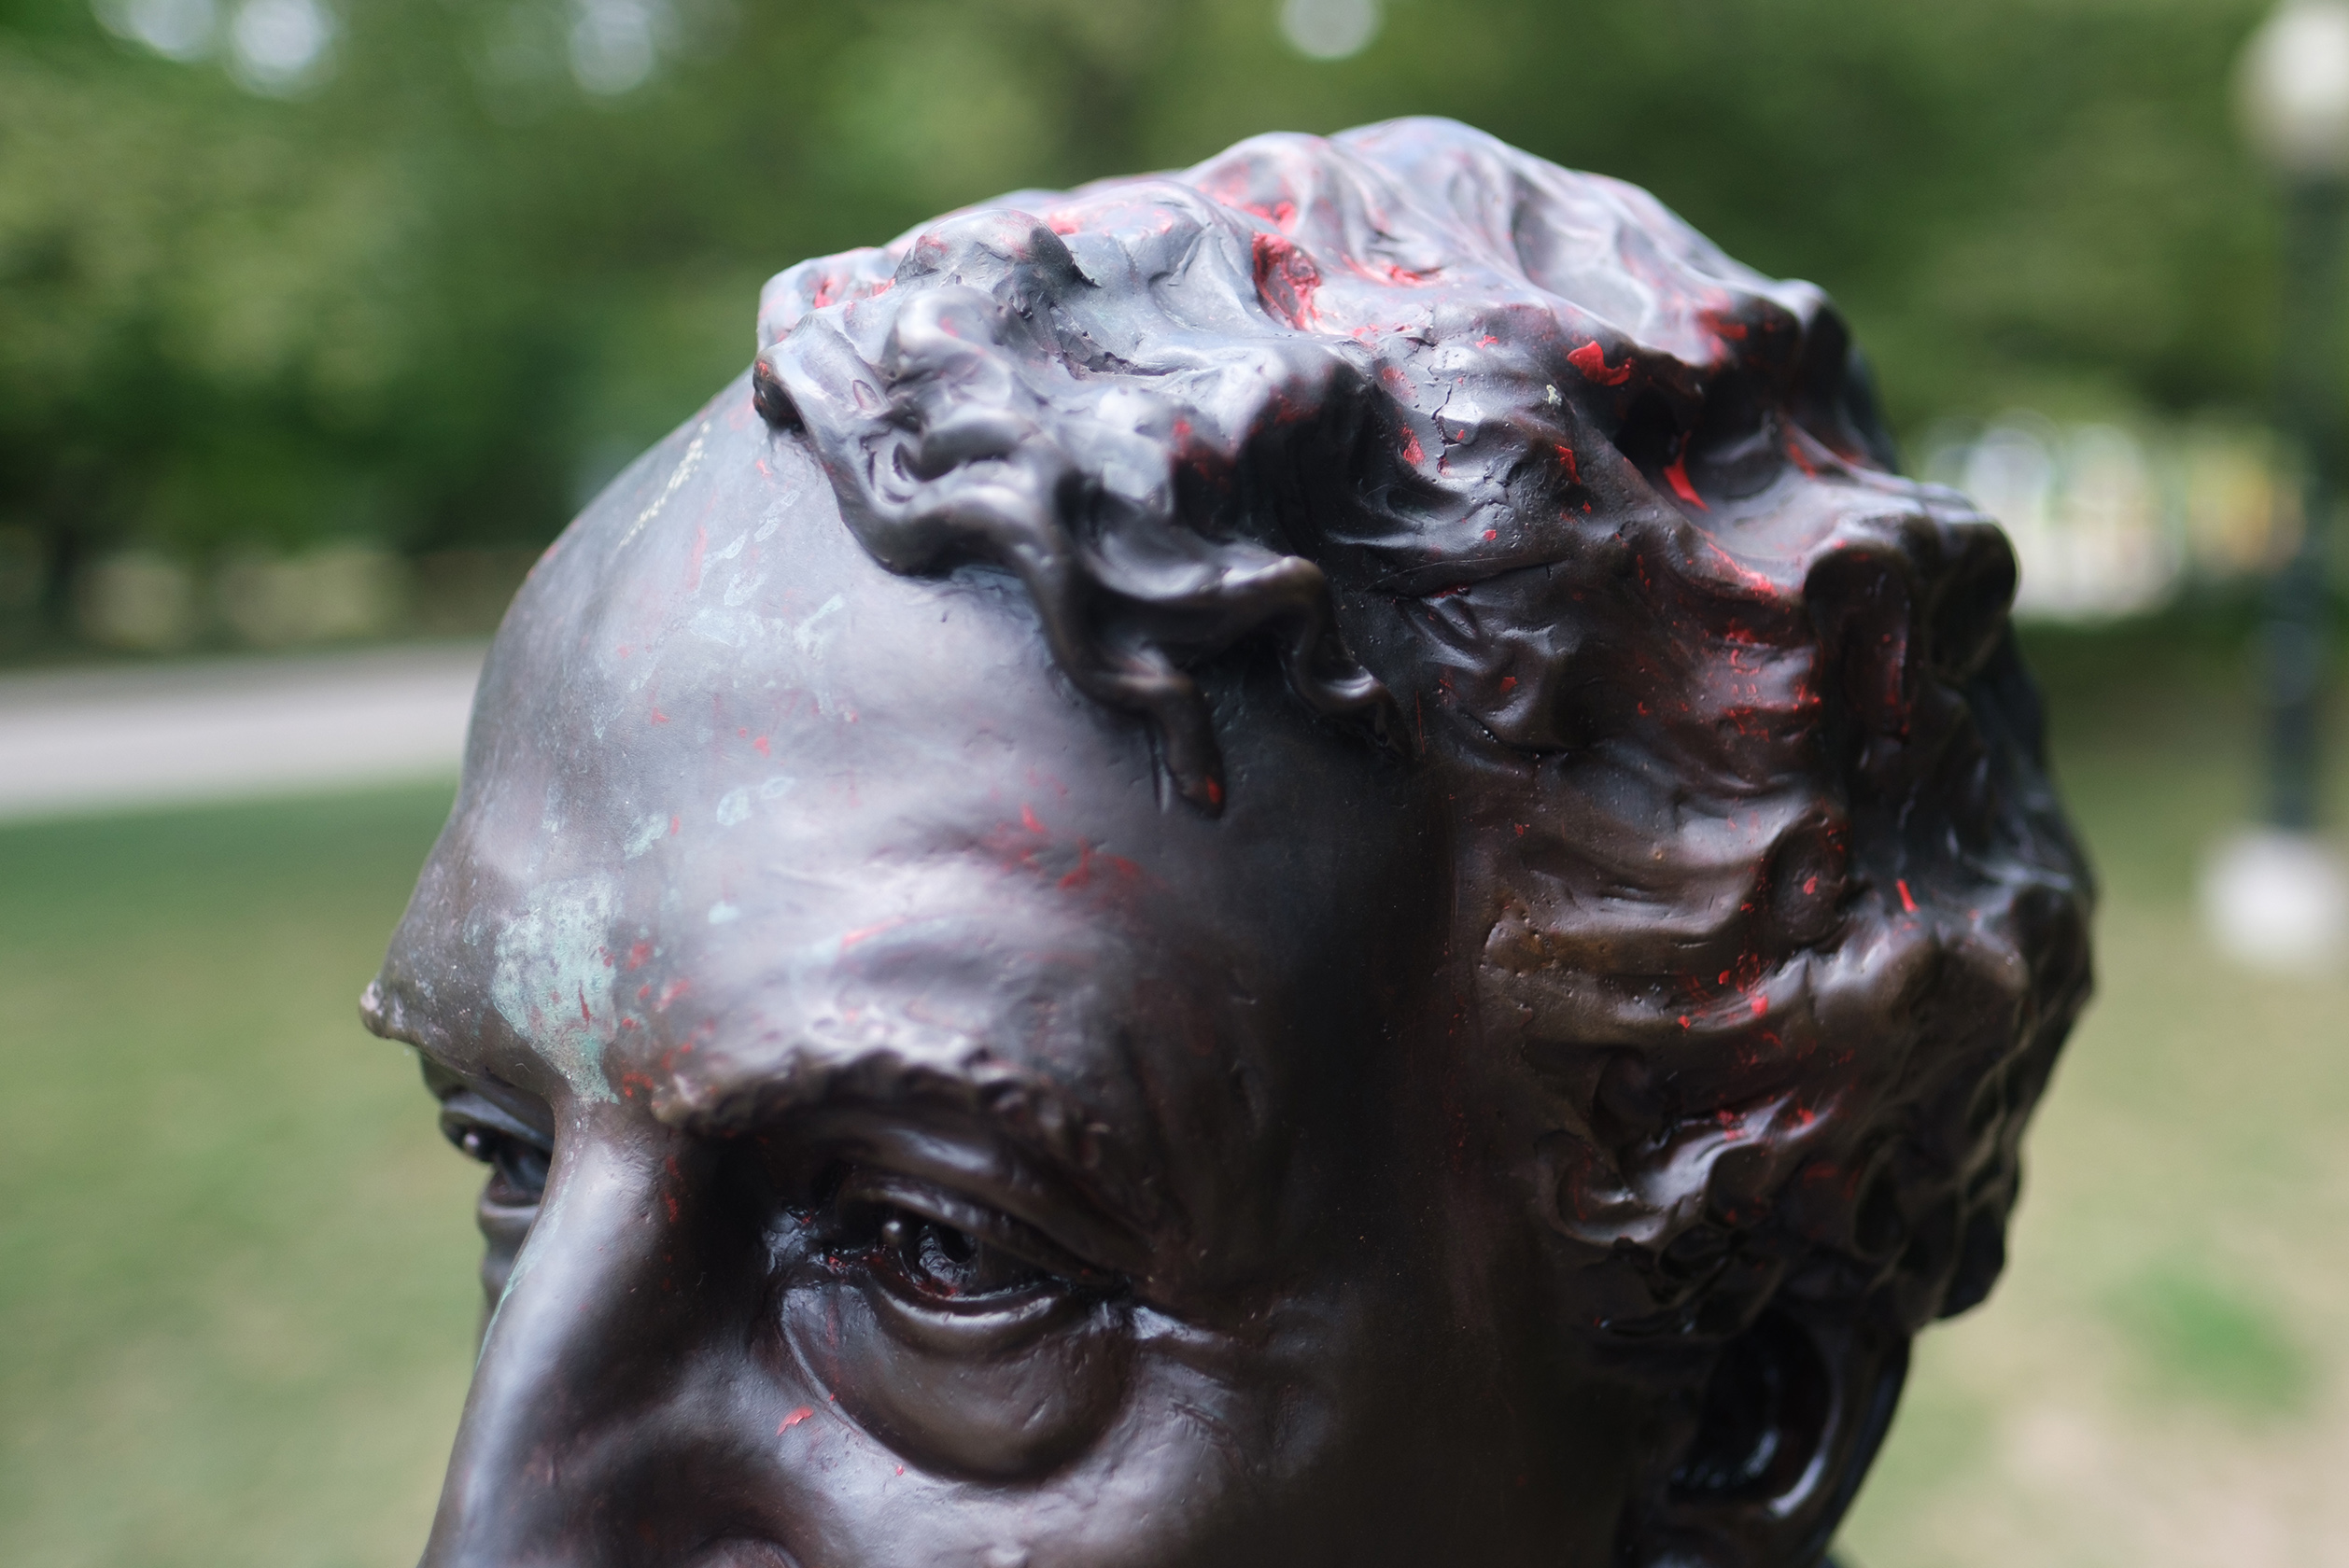 Red paint is still visible on the sculpture of Macdonald at the entrance of The Prime Ministers Path in Wilmot, Ont. (Photograph by Yader Guzman)